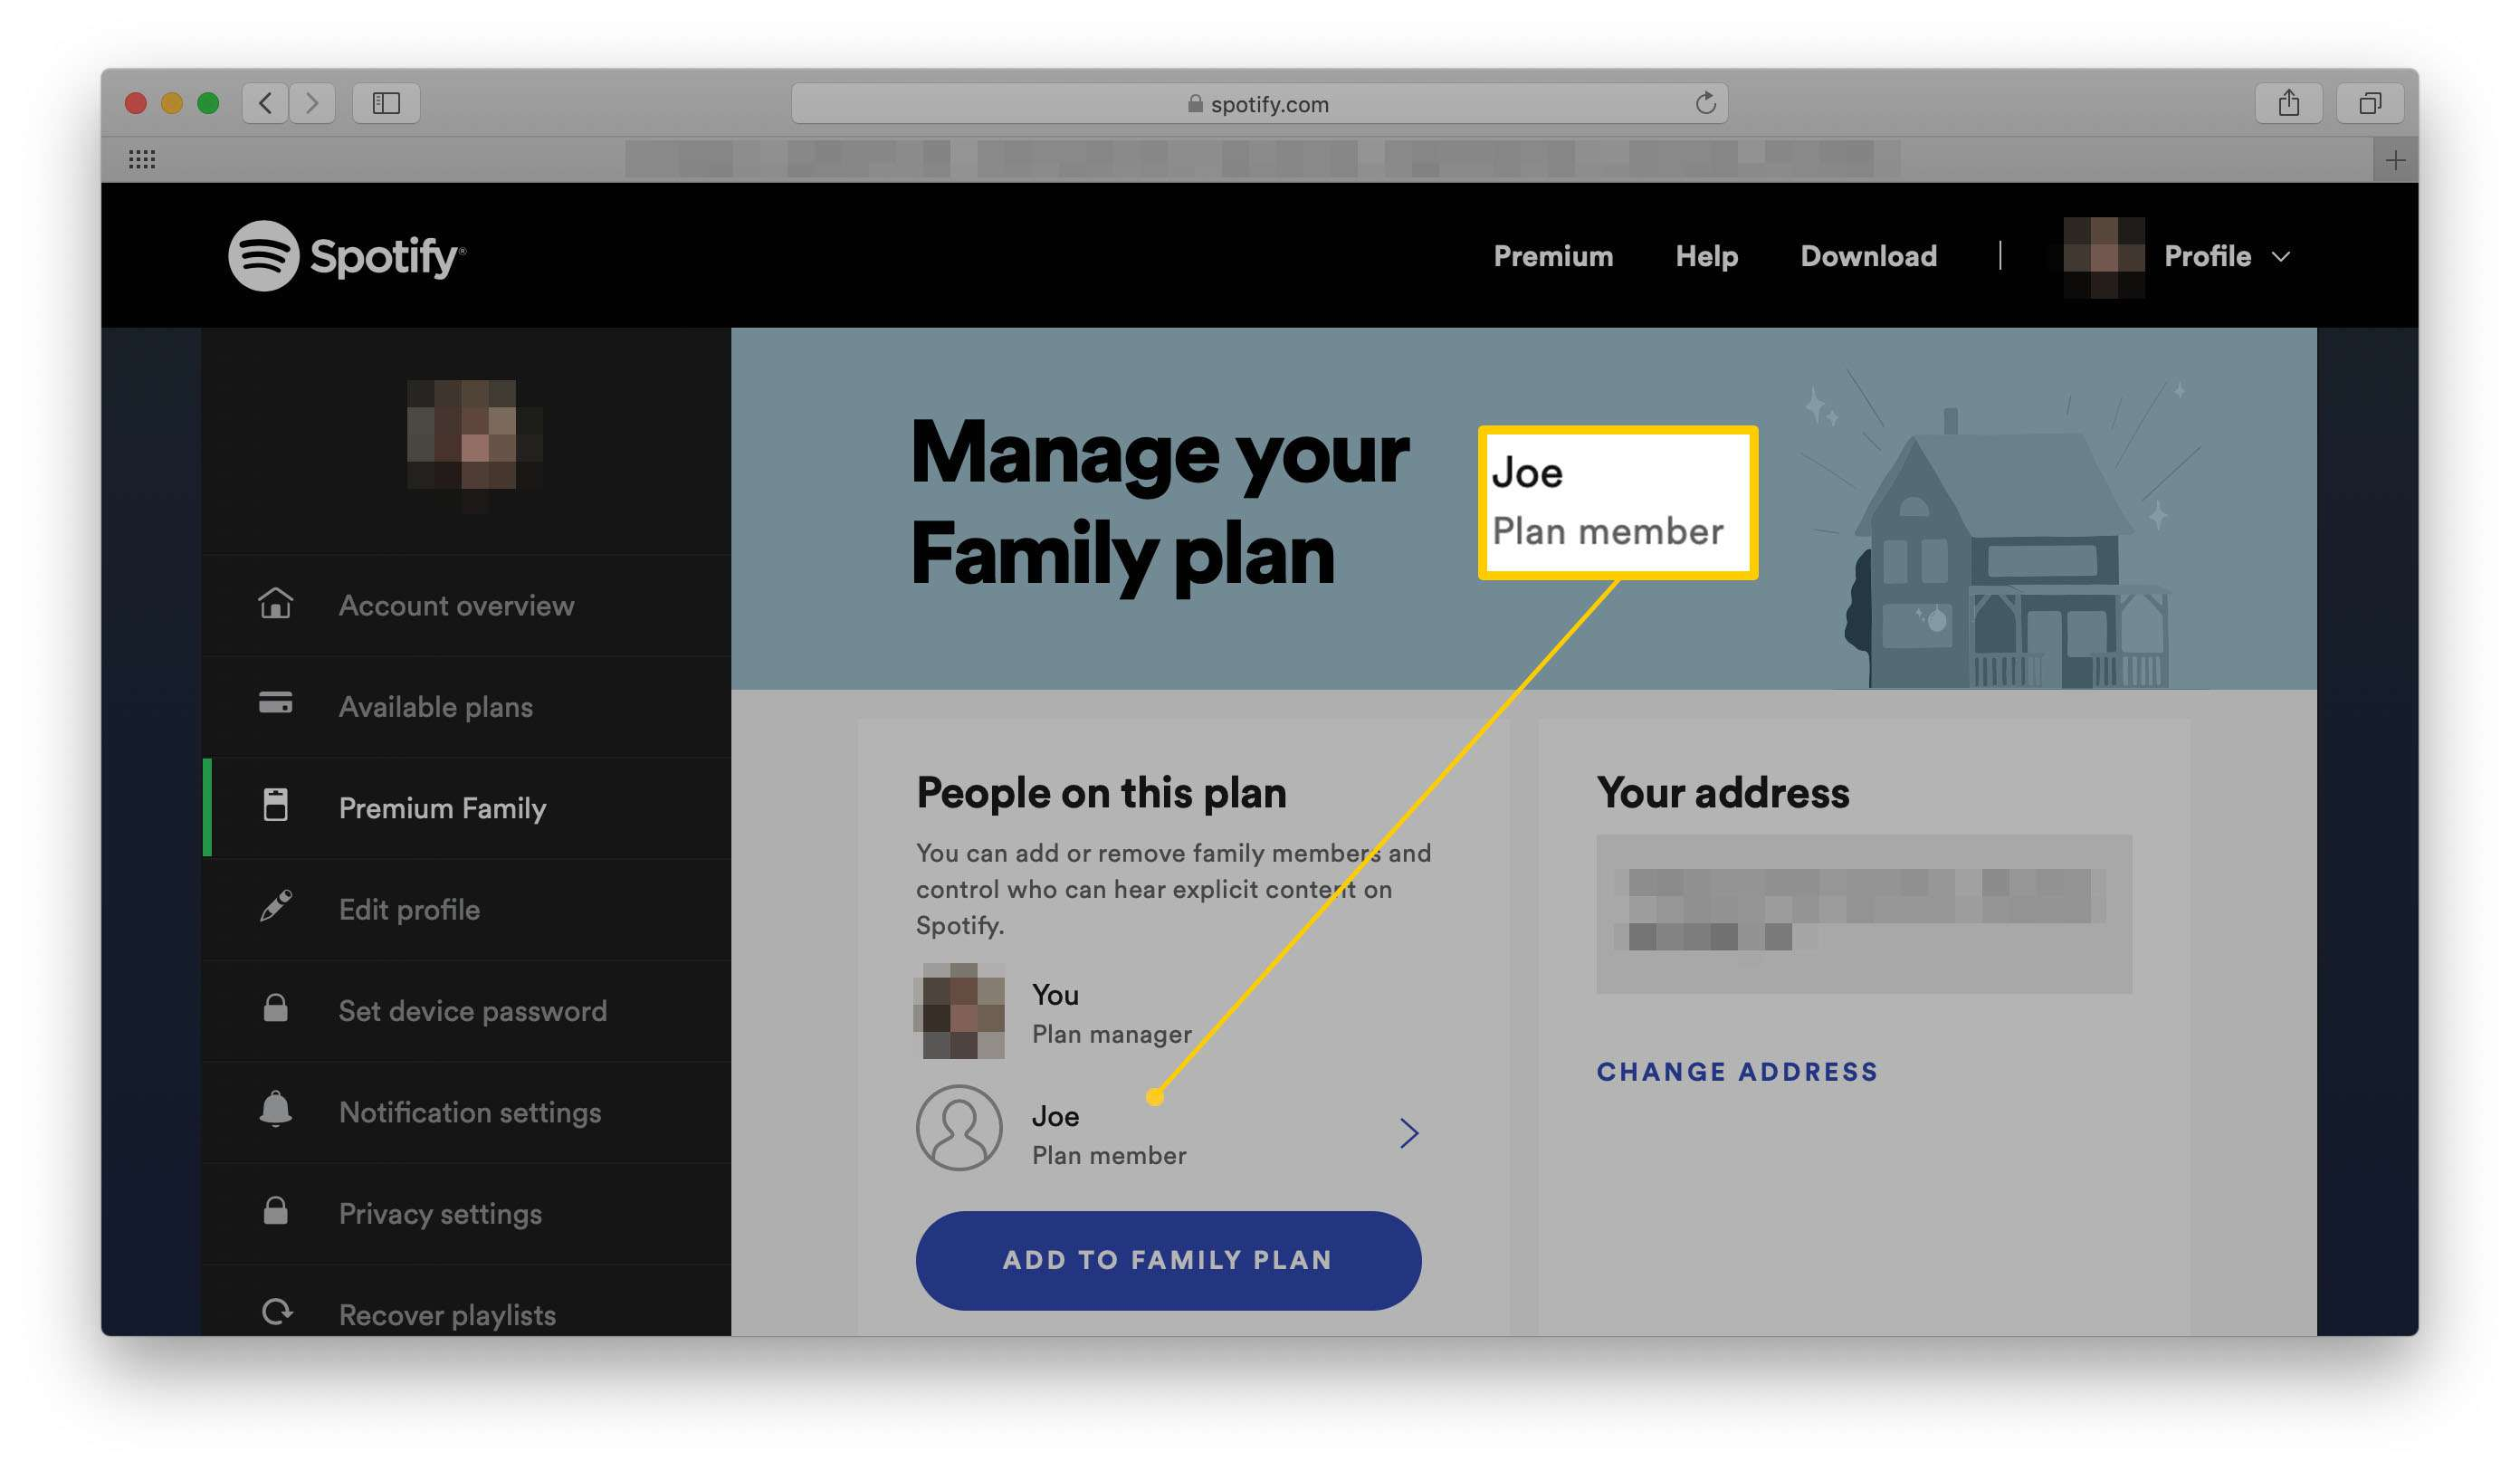 Spotify account details with a plan member name highlighted